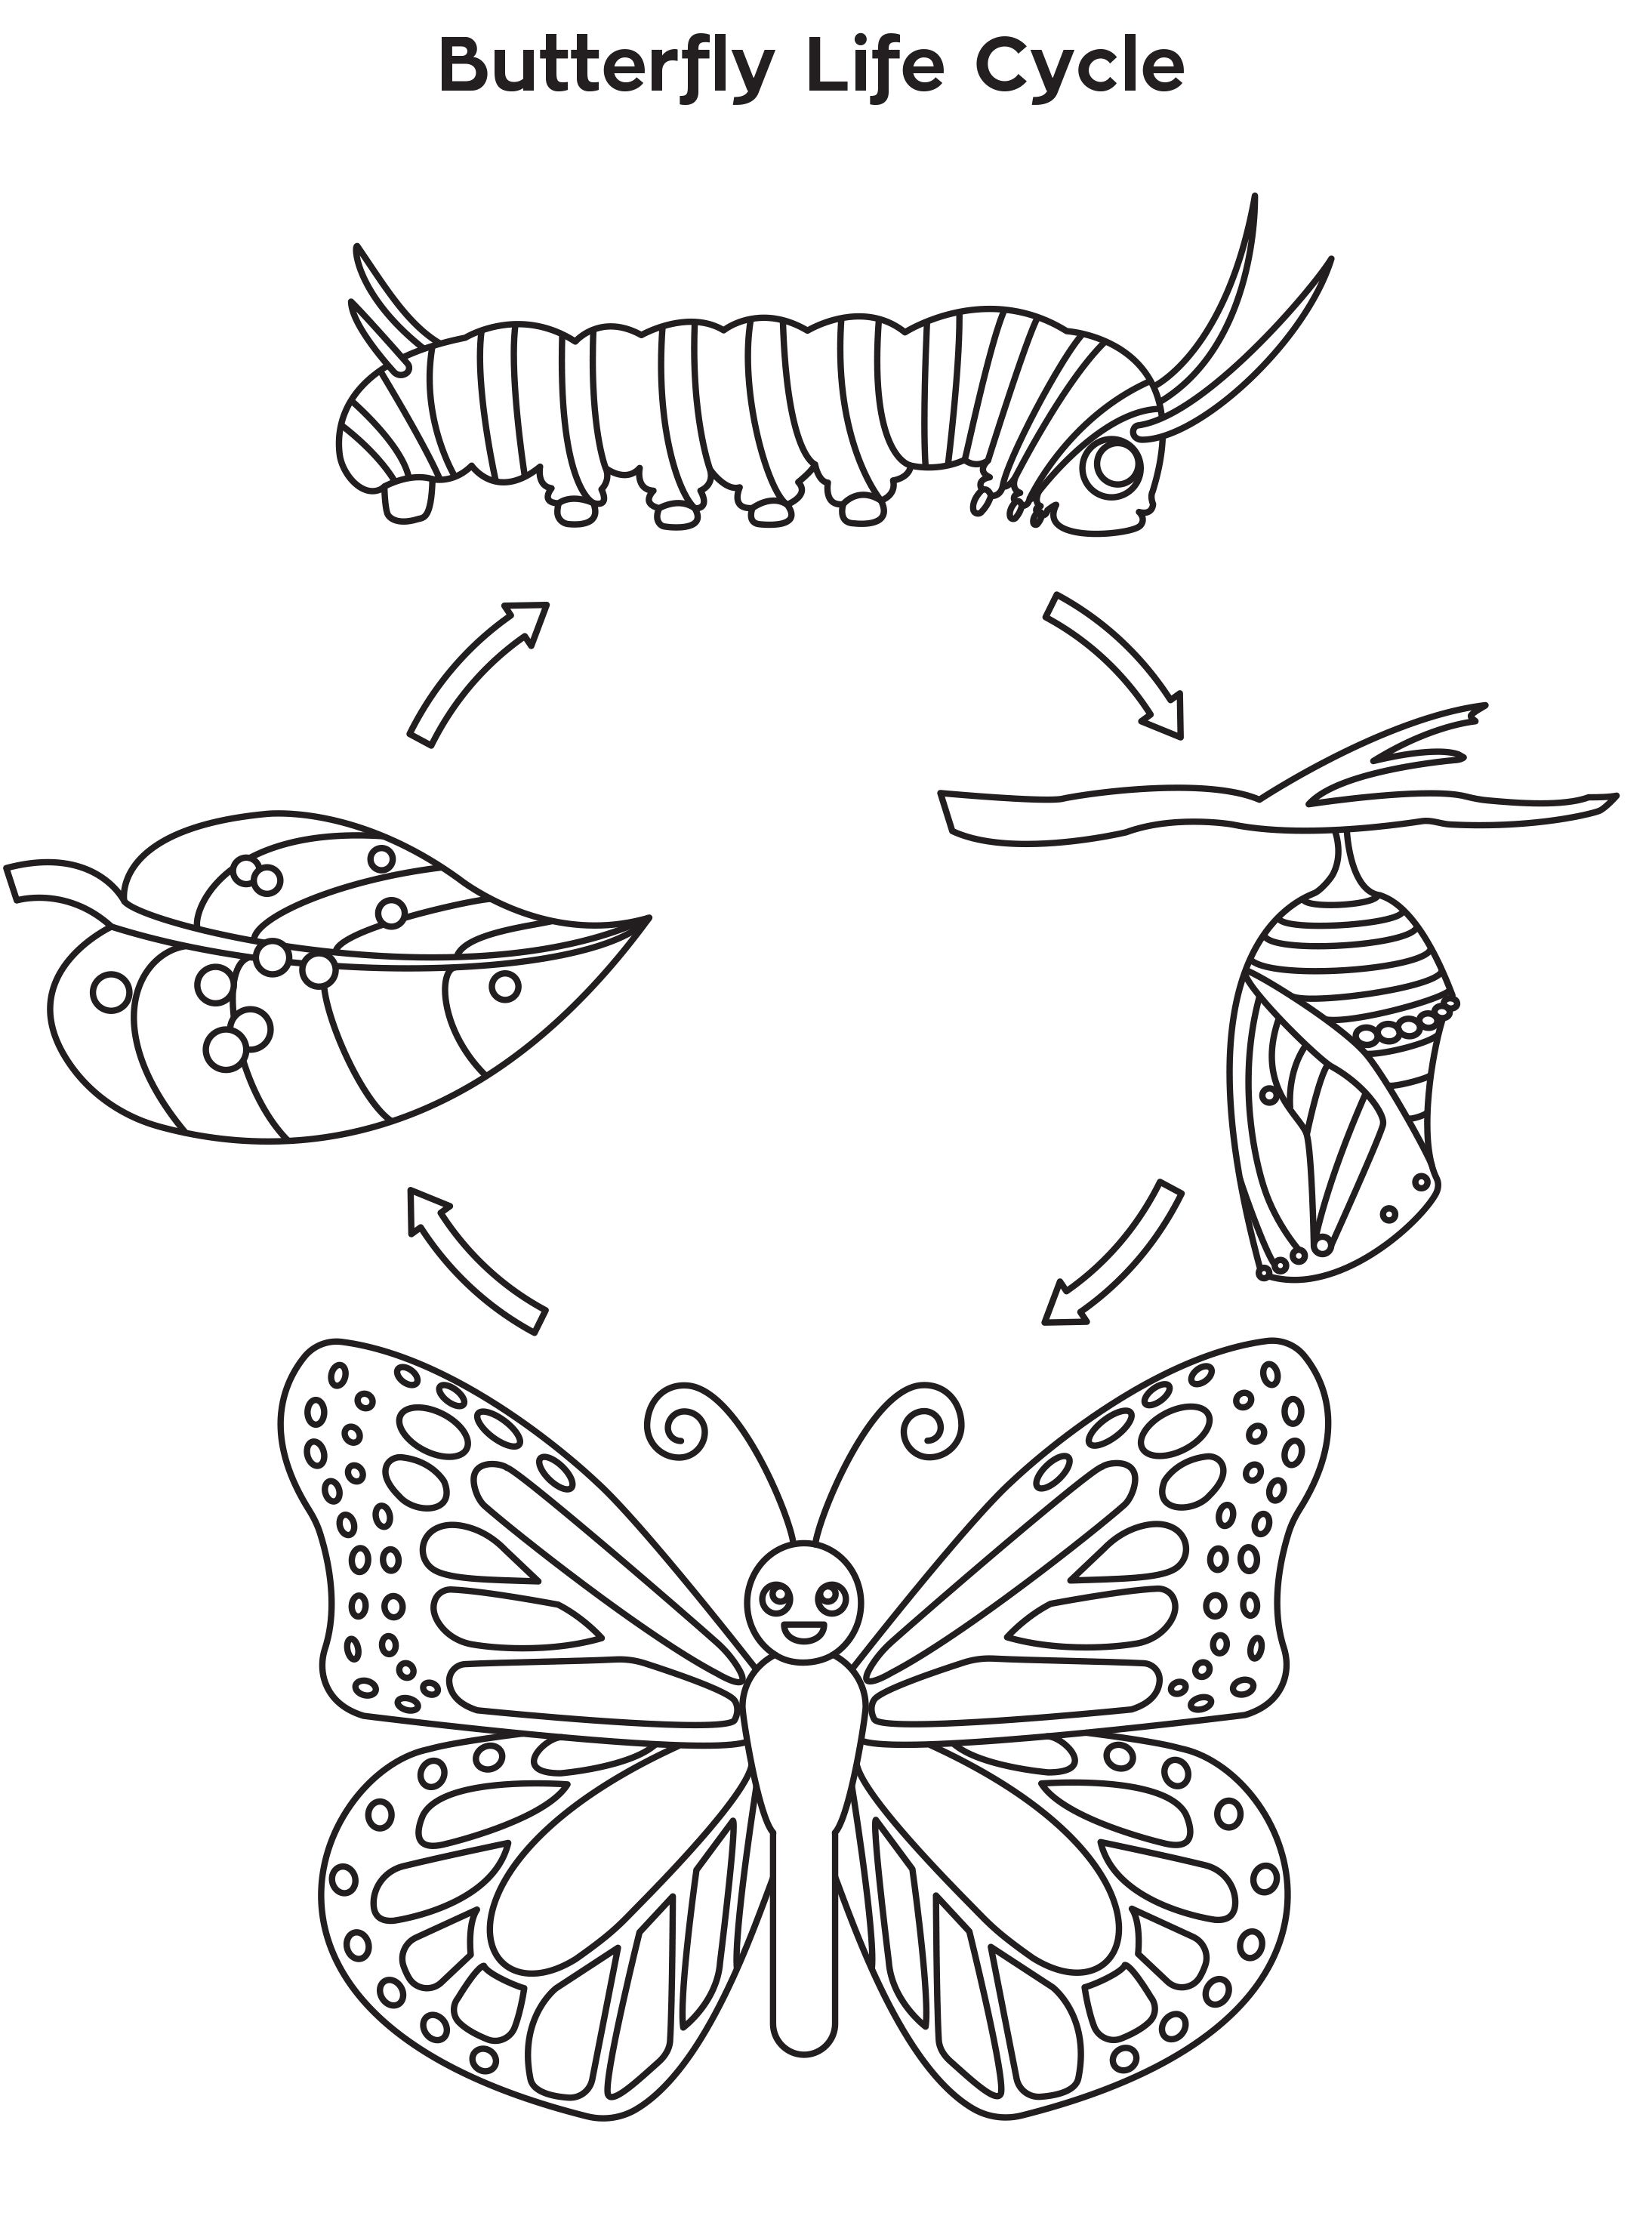 Meeting 6 Butterfly Life Cycle Coloring Sheet Busy Bee